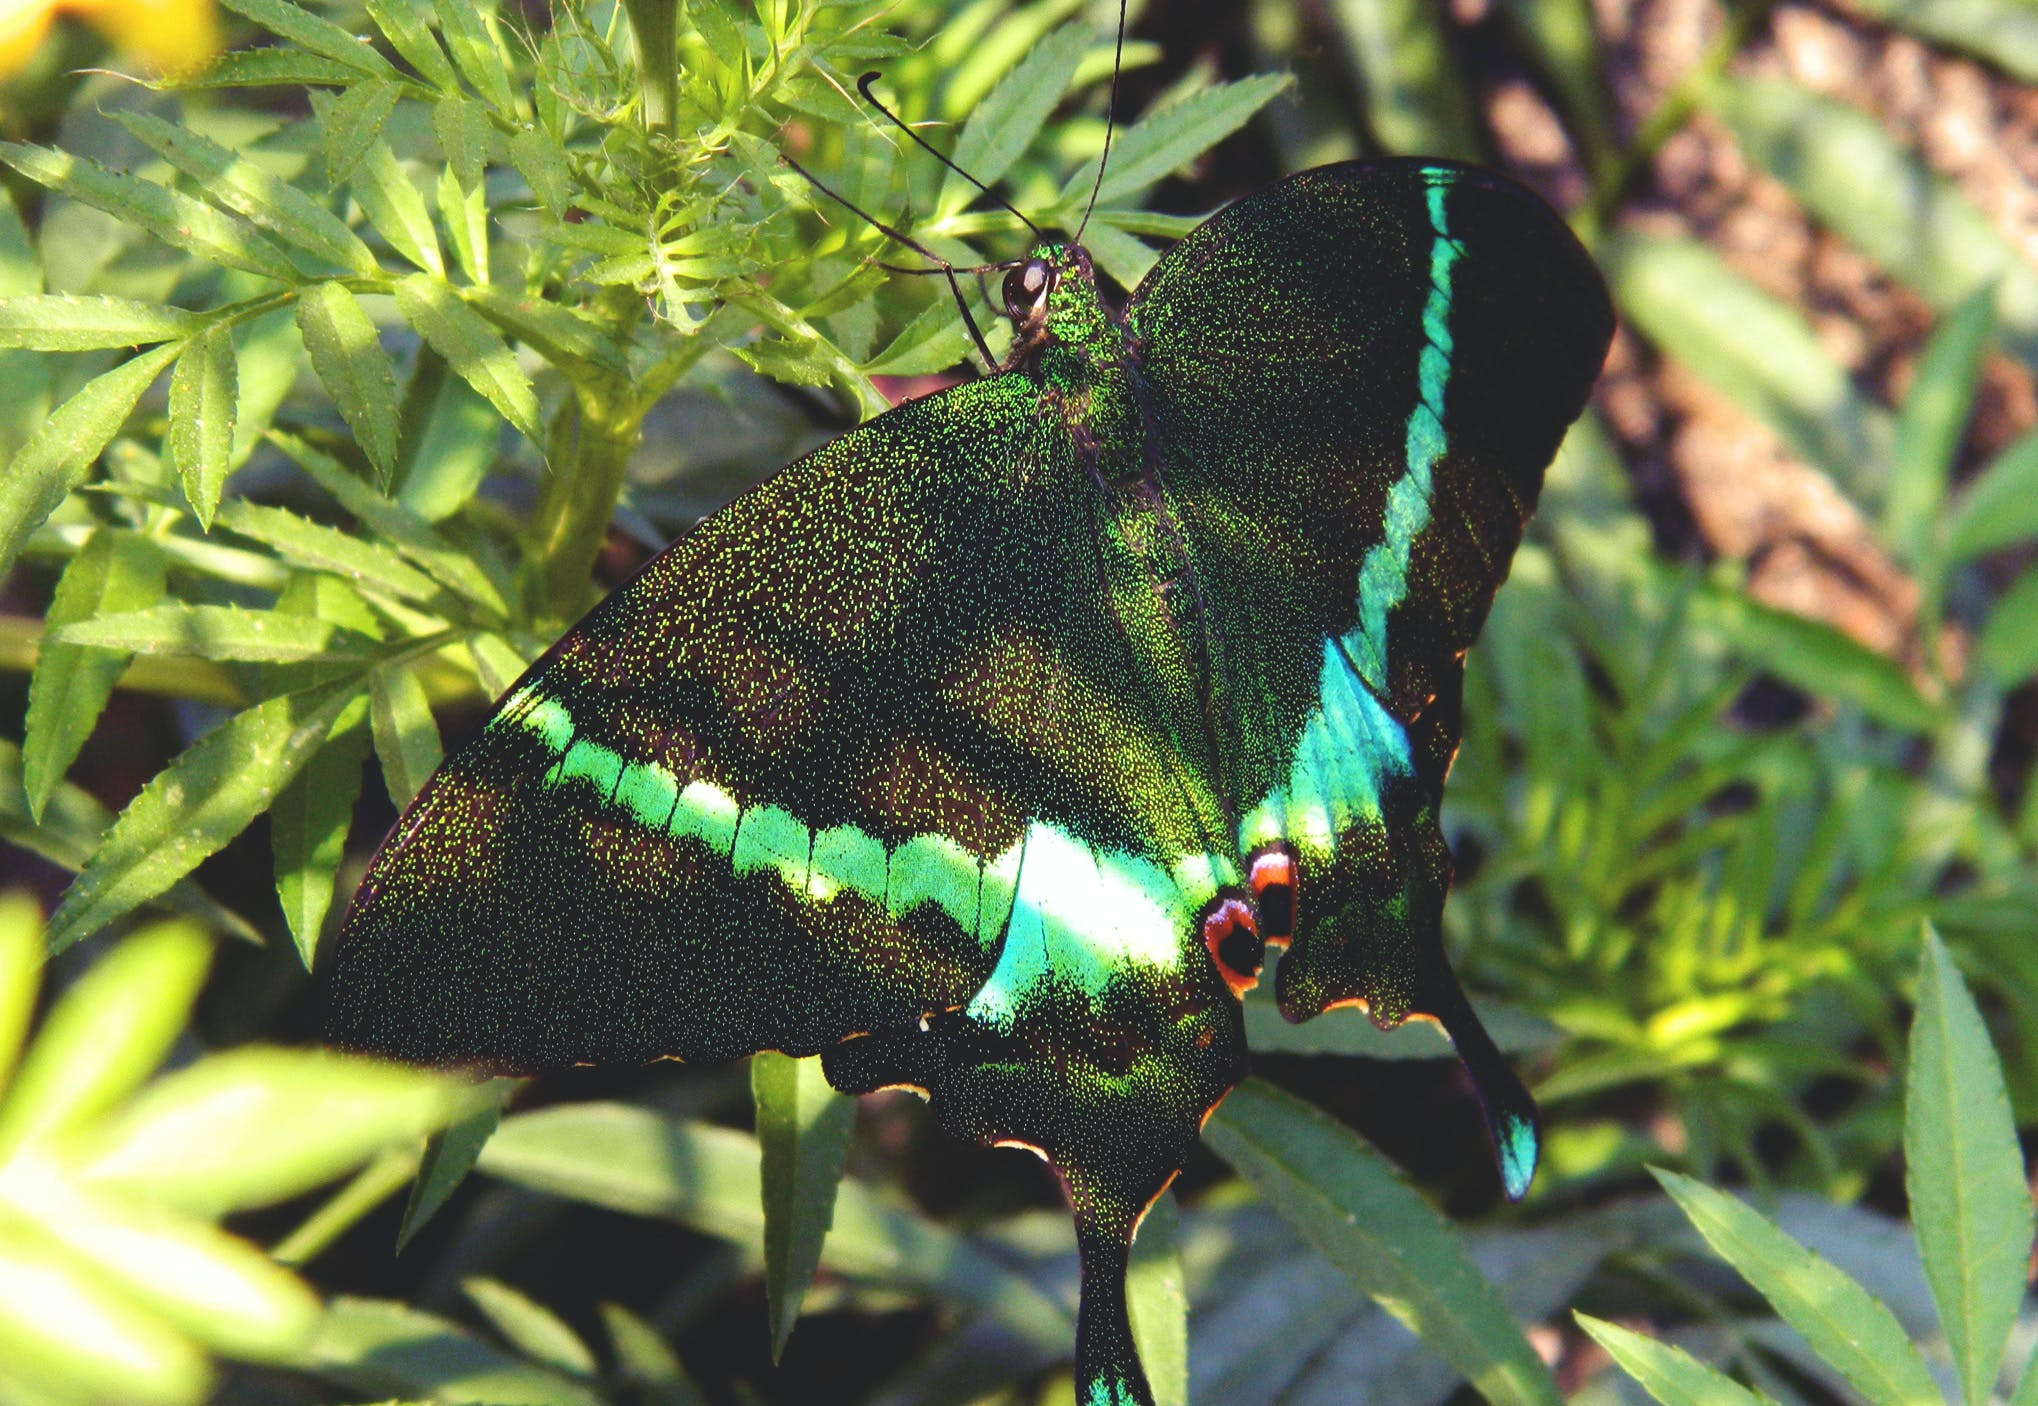 Green and Black Swallowtail Butterfly on Green Leaf Plant